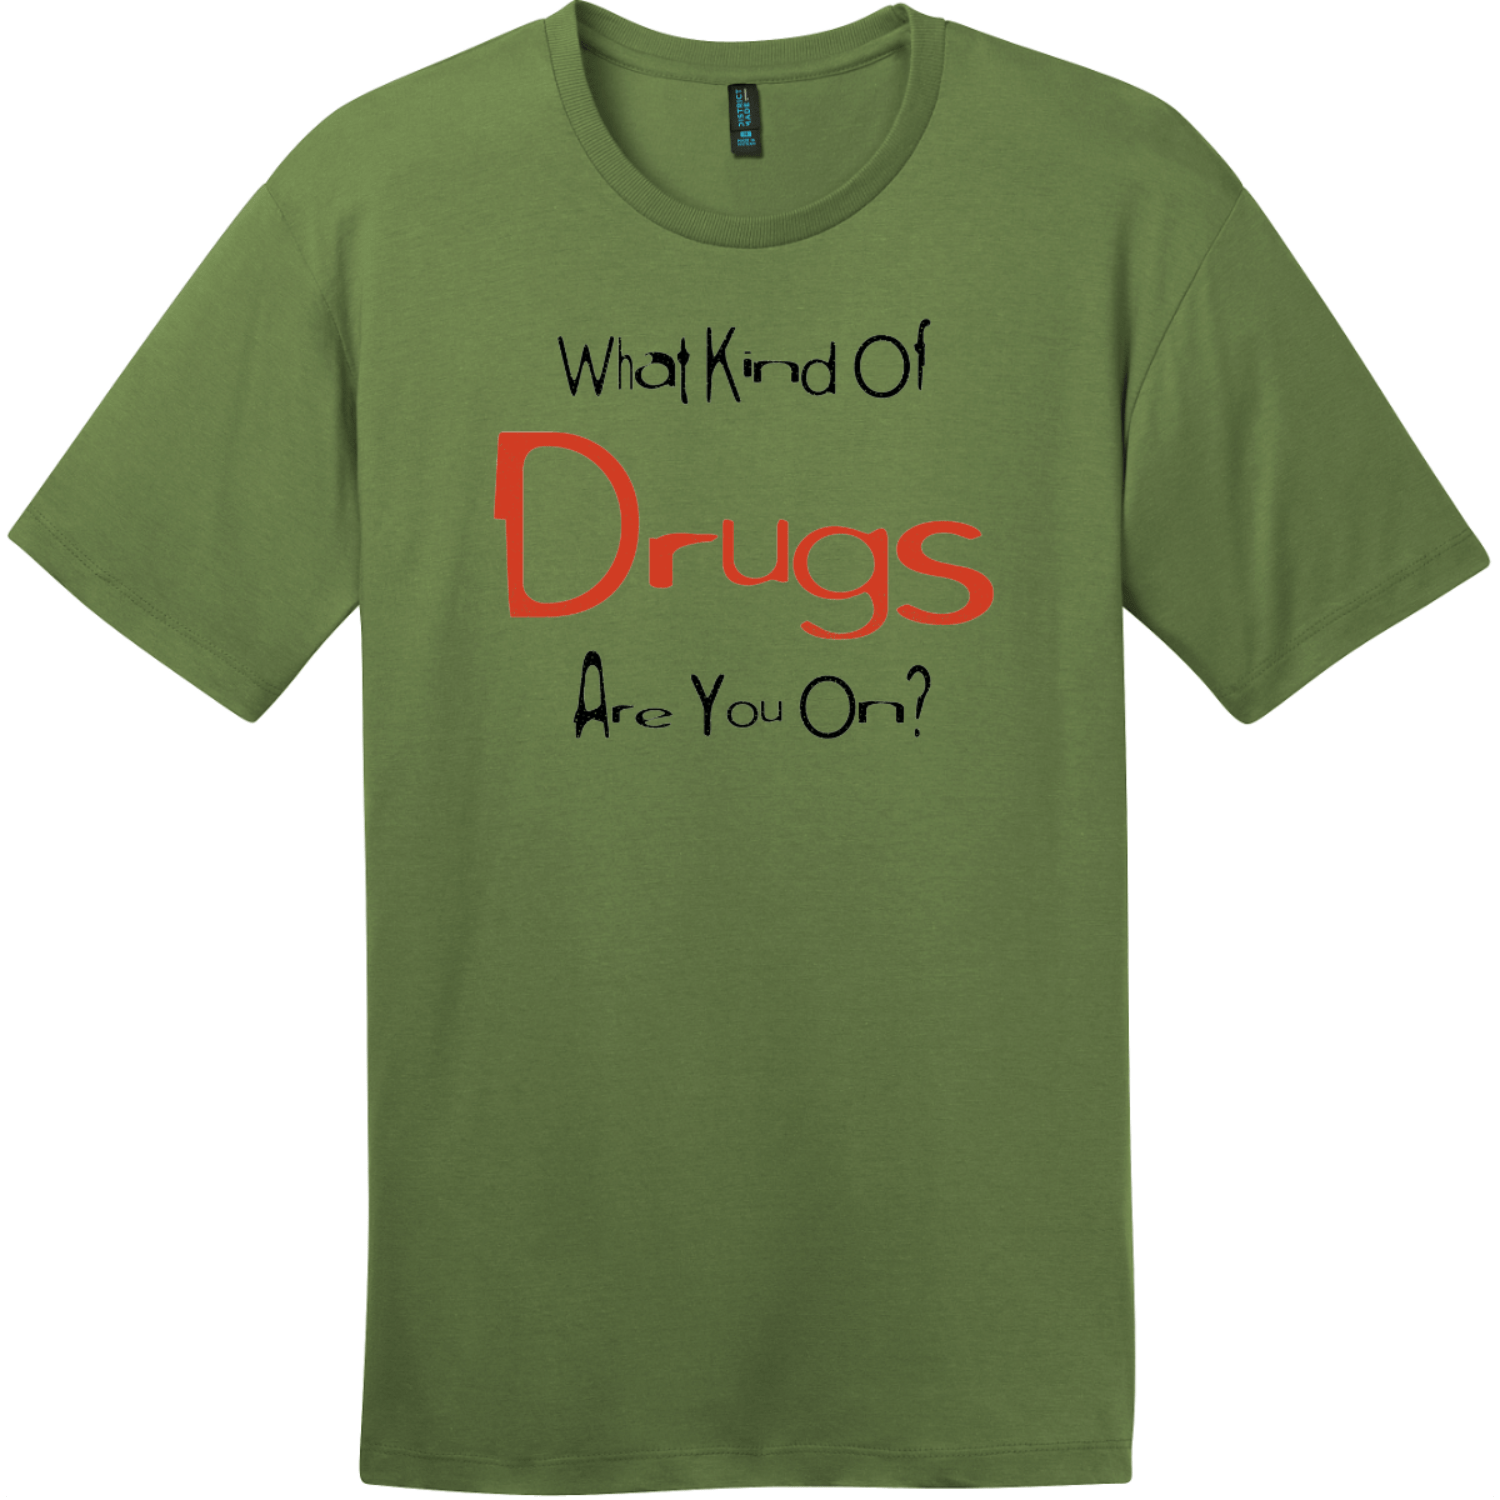 What Kind Of Drugs Are You On T-Shirt Fresh Fatigue District Perfect Weight Tee DT104